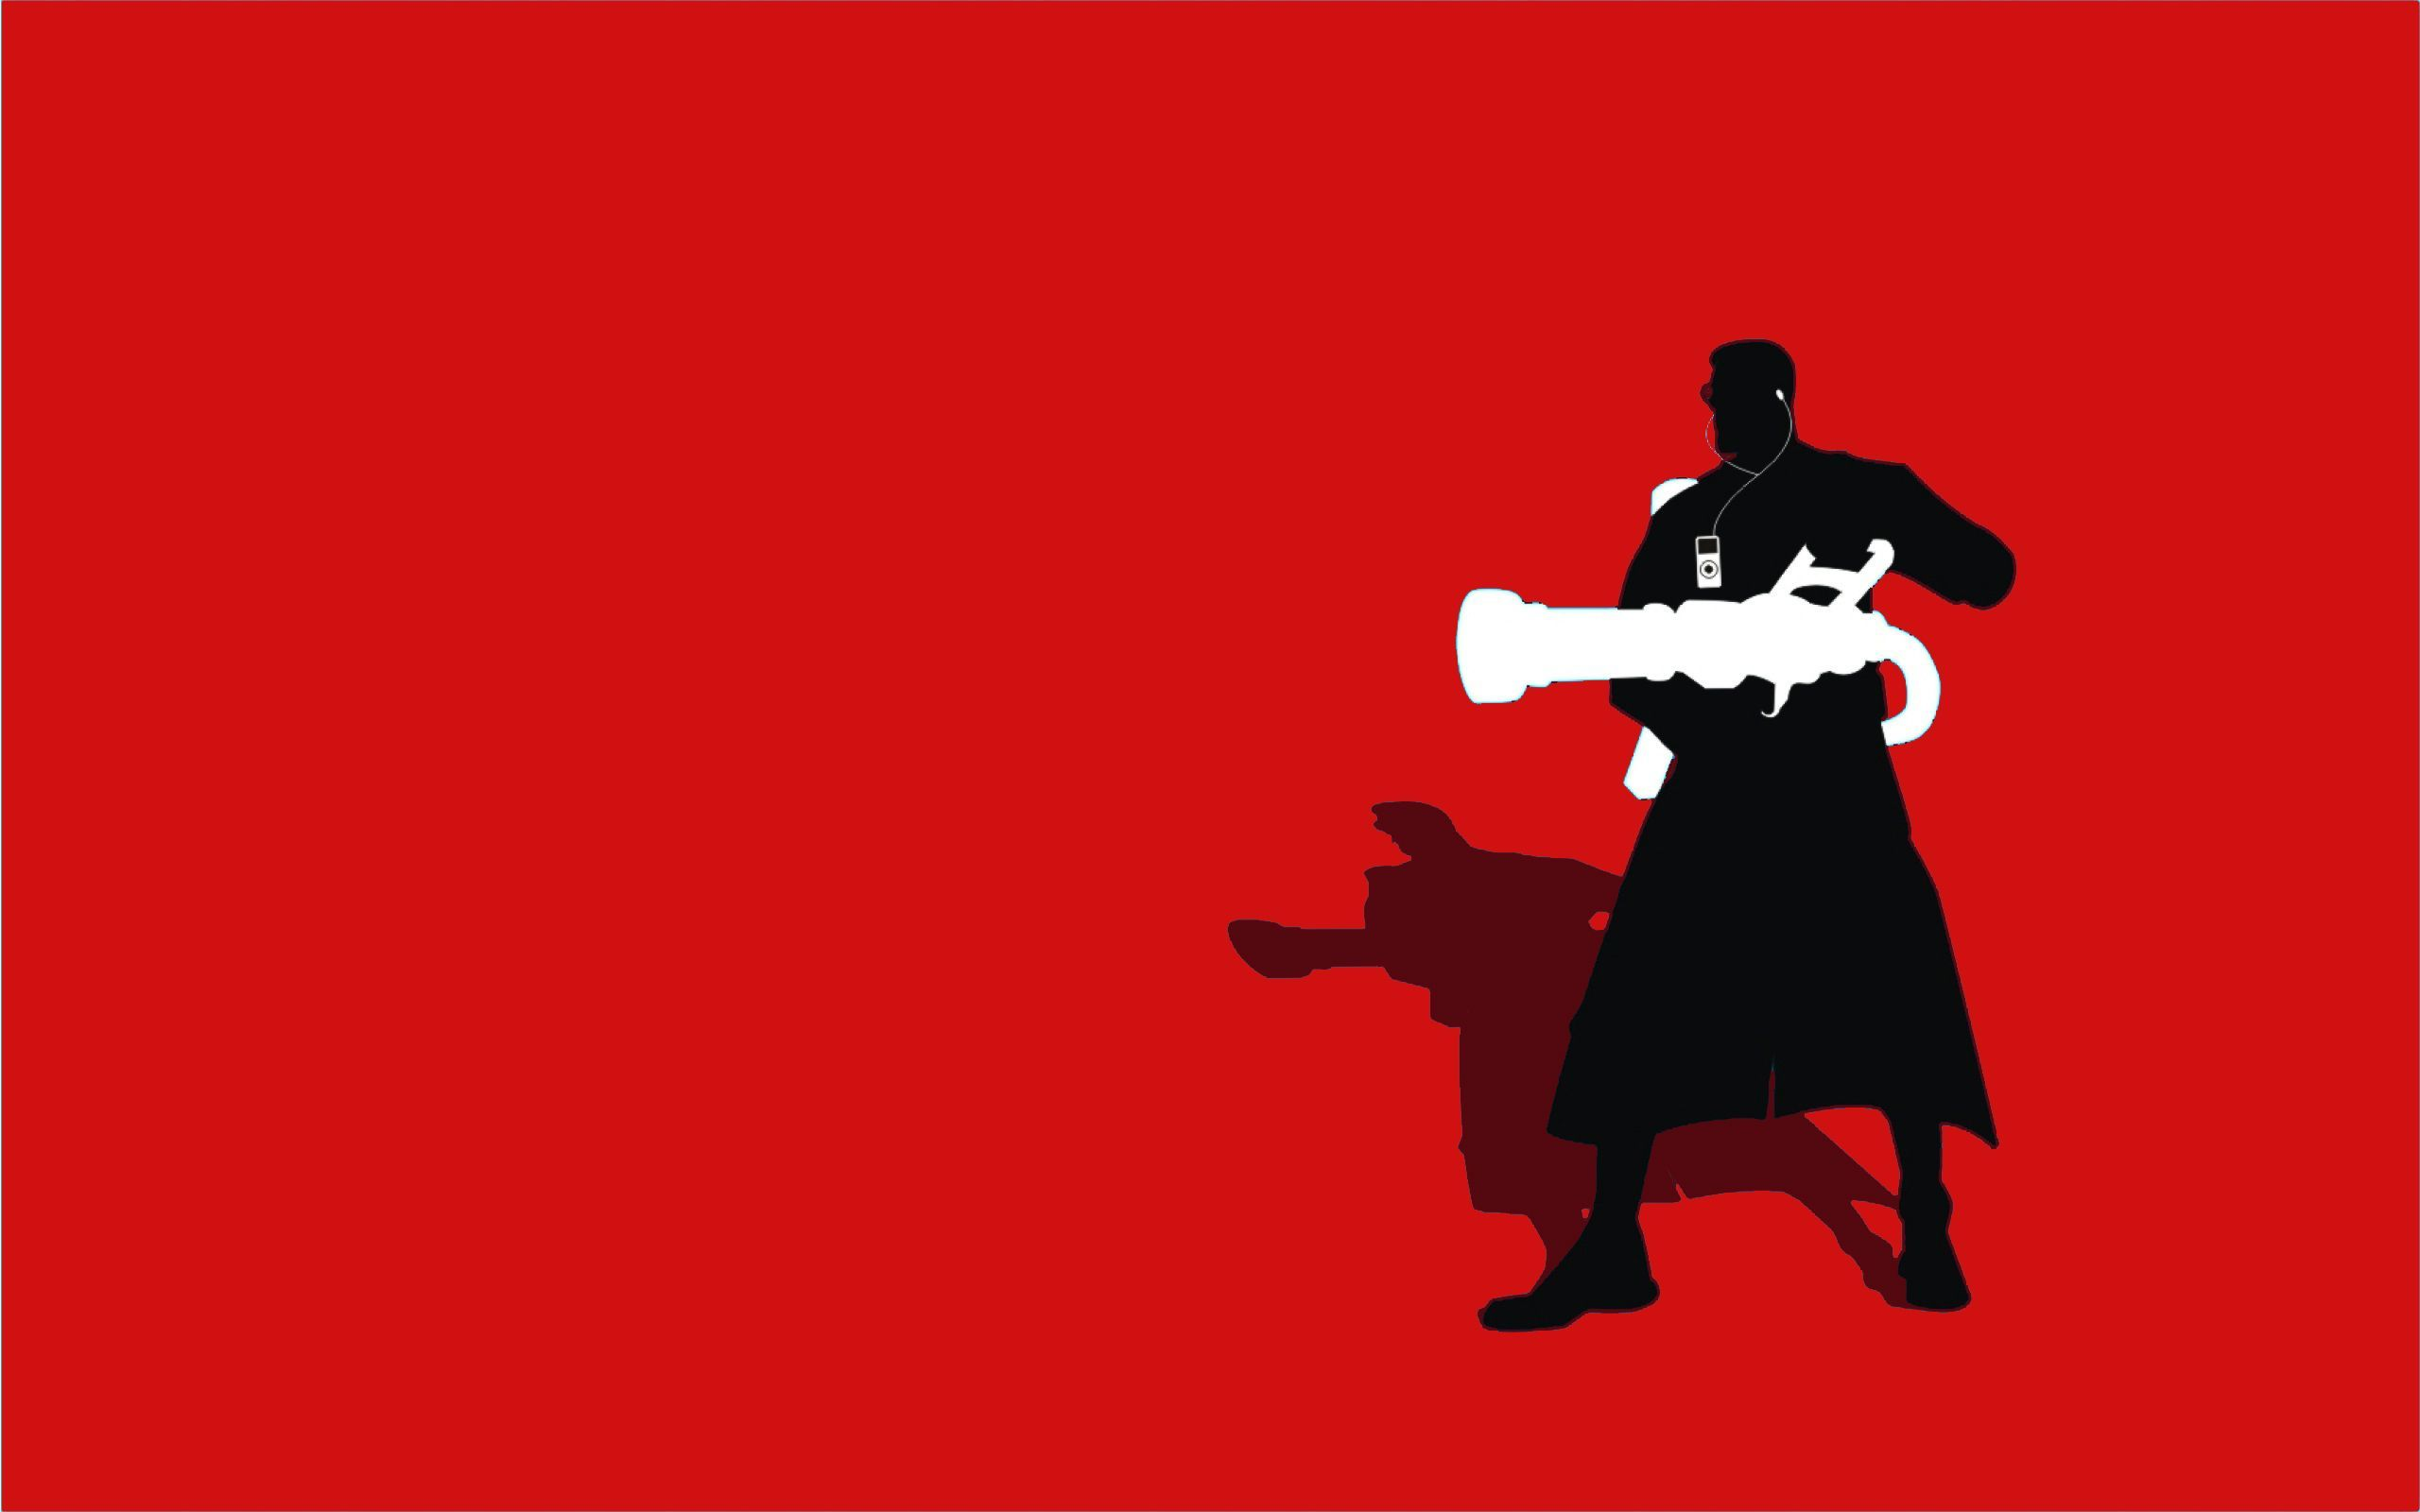 TF2 Medic Wallpapers - Top Free TF2 Medic Backgrounds